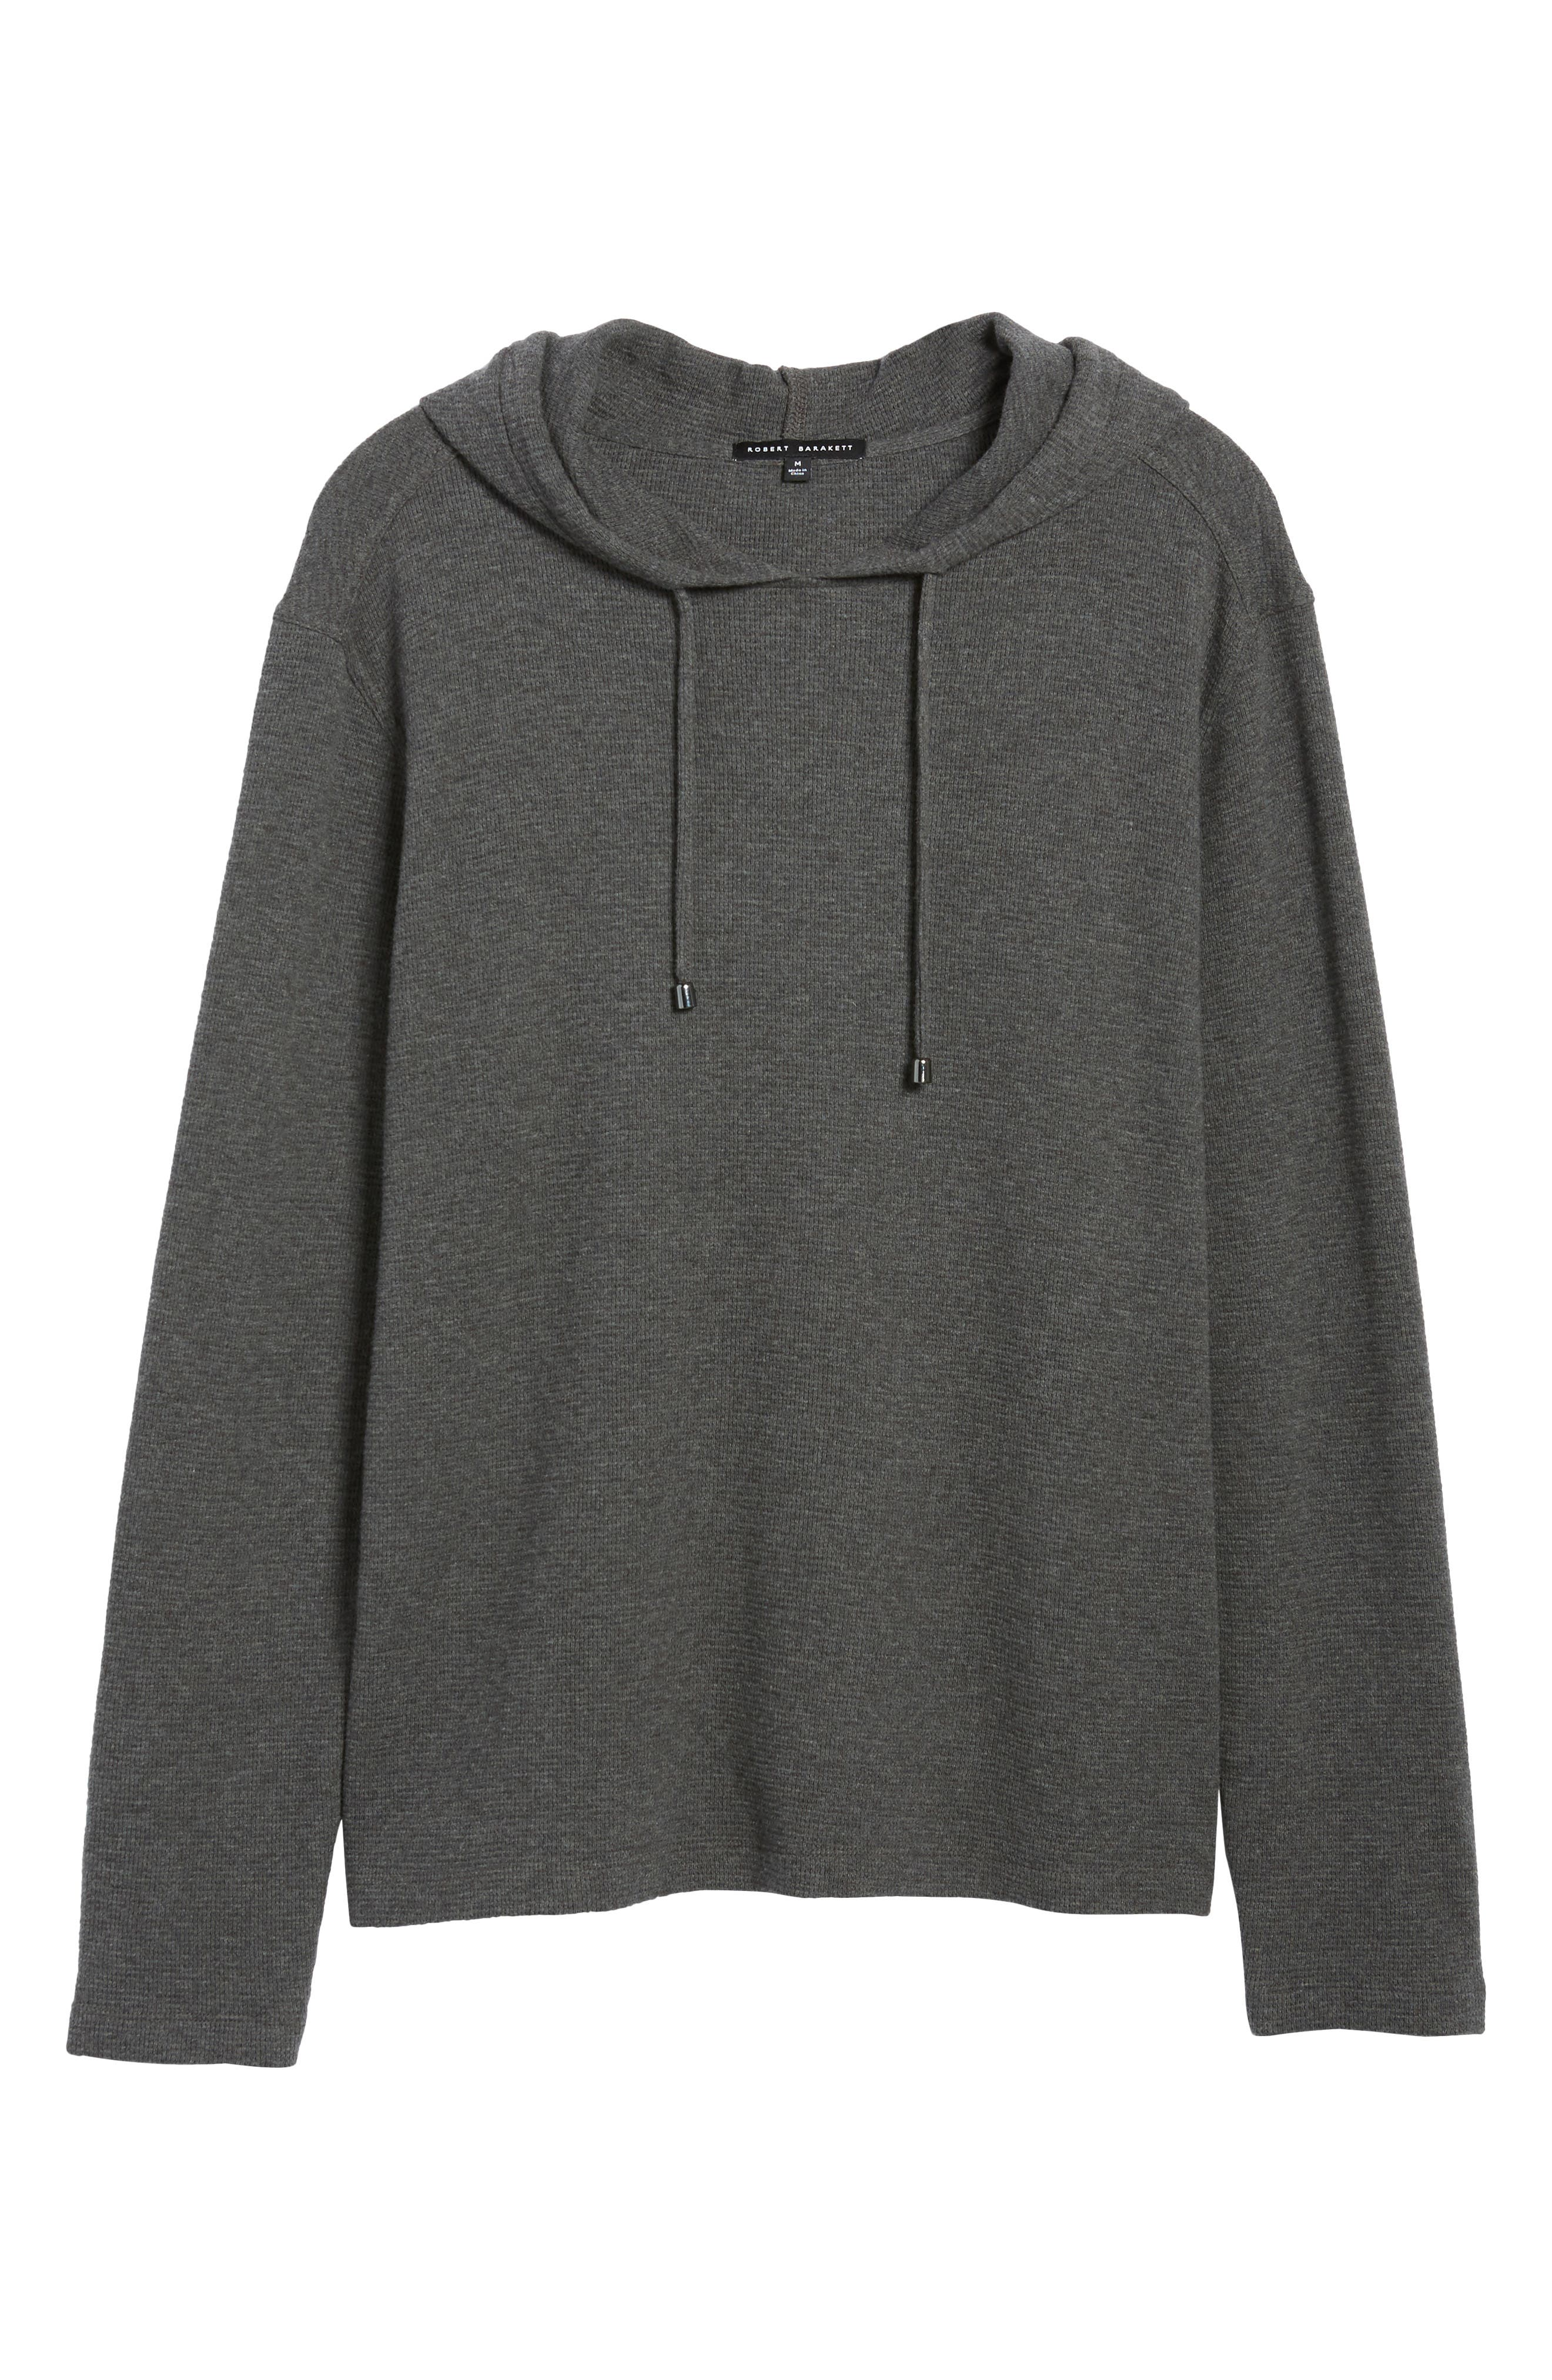 Wilson Pullover Hoodie,                             Alternate thumbnail 6, color,                             CHARCOAL